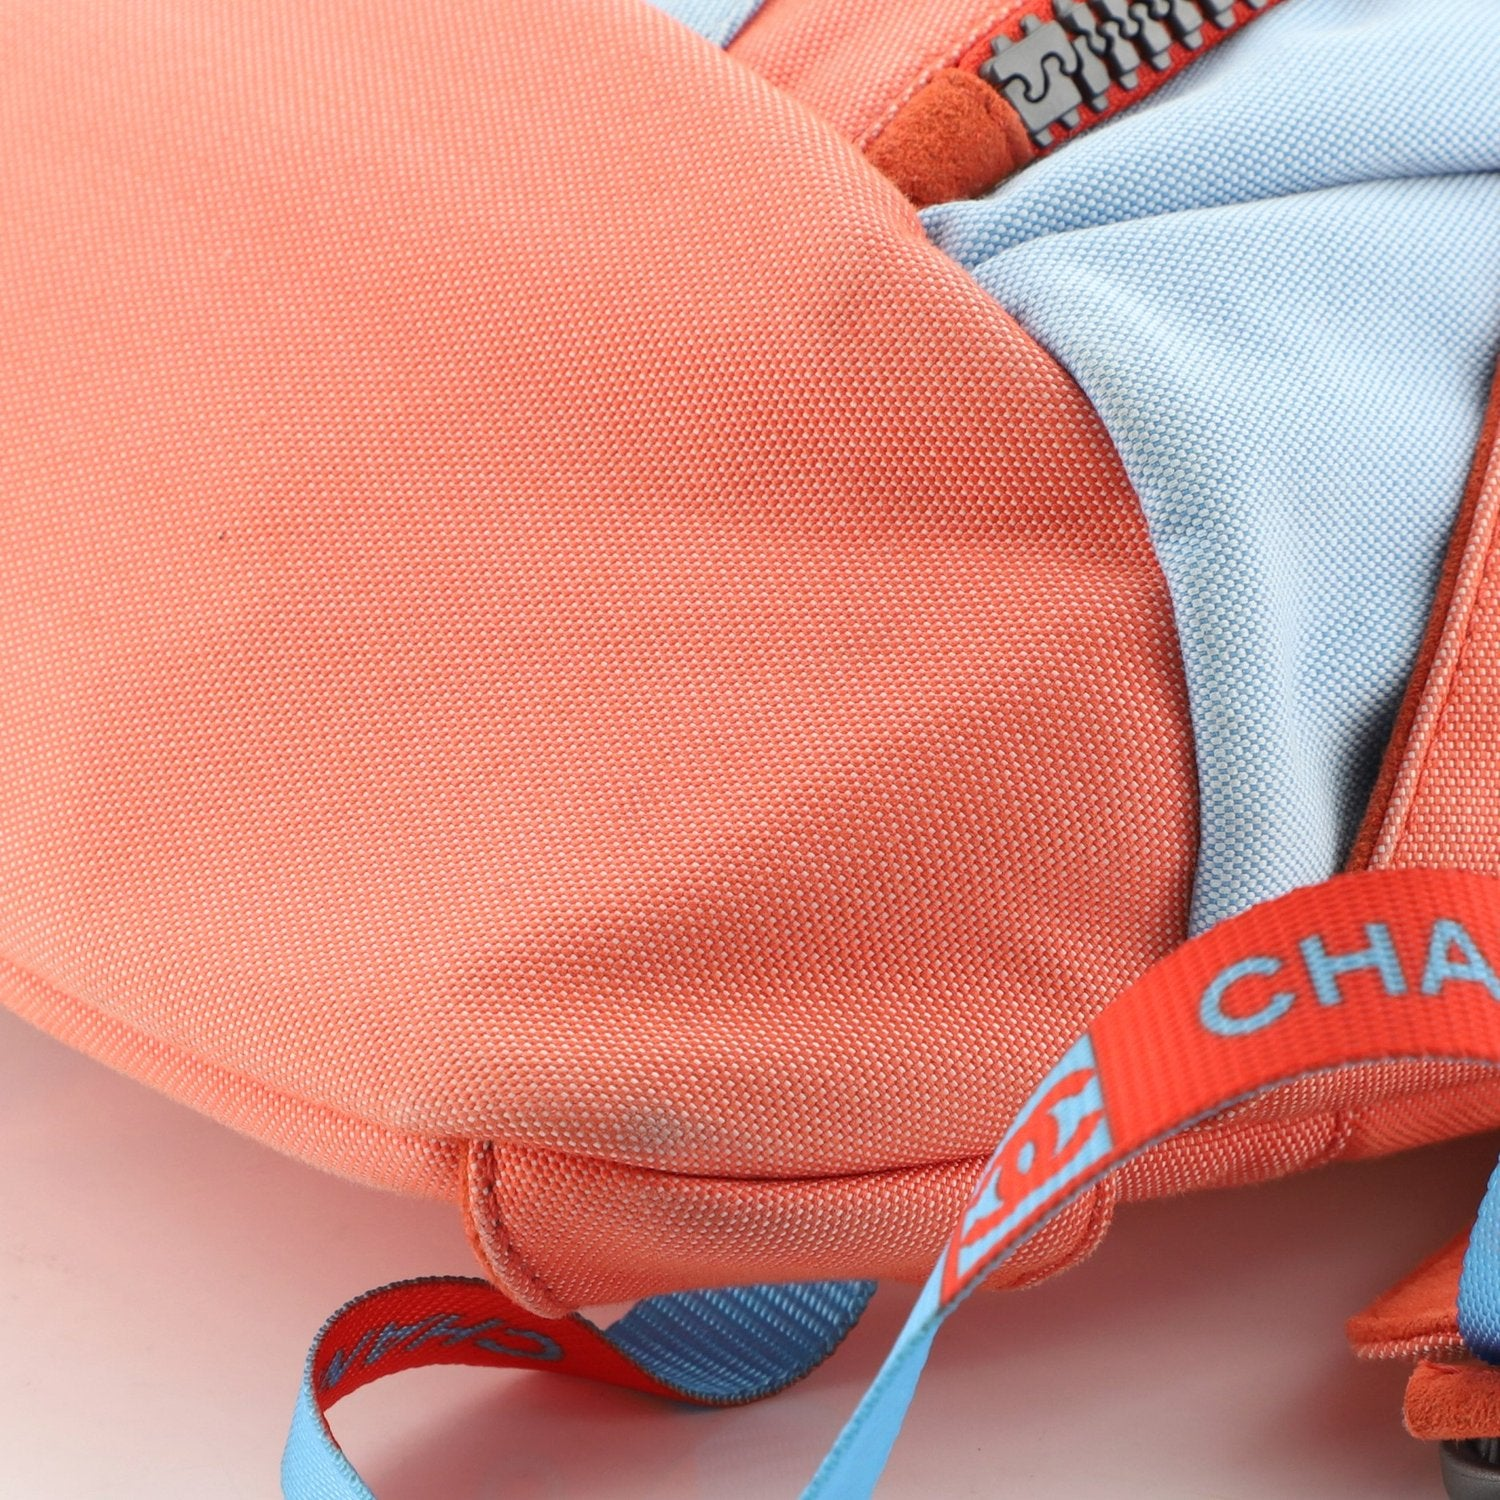 Chanel Sport Line Backpack Canvas